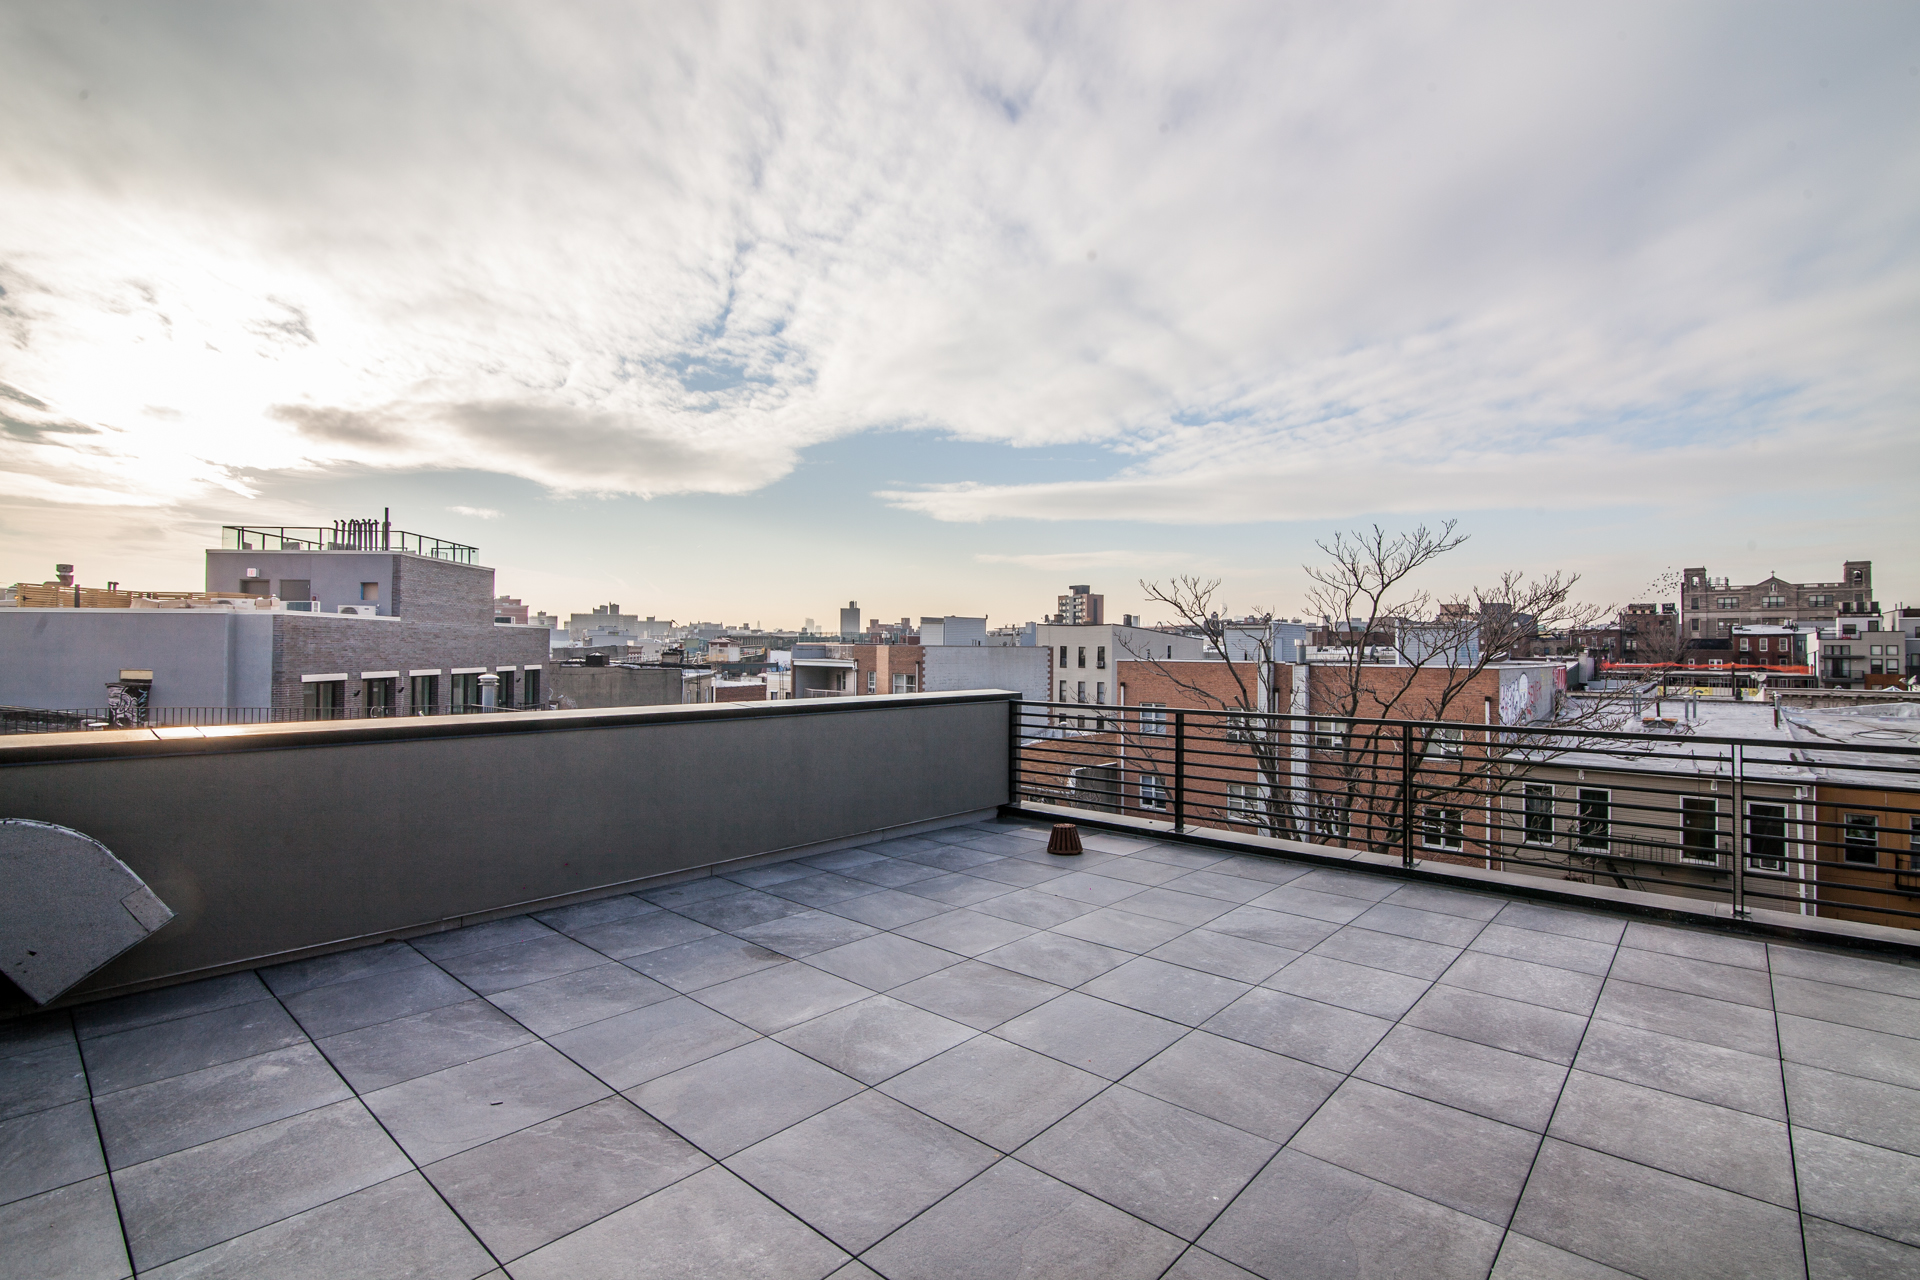 129 Stockholm St - condo for sale - 2R - 8